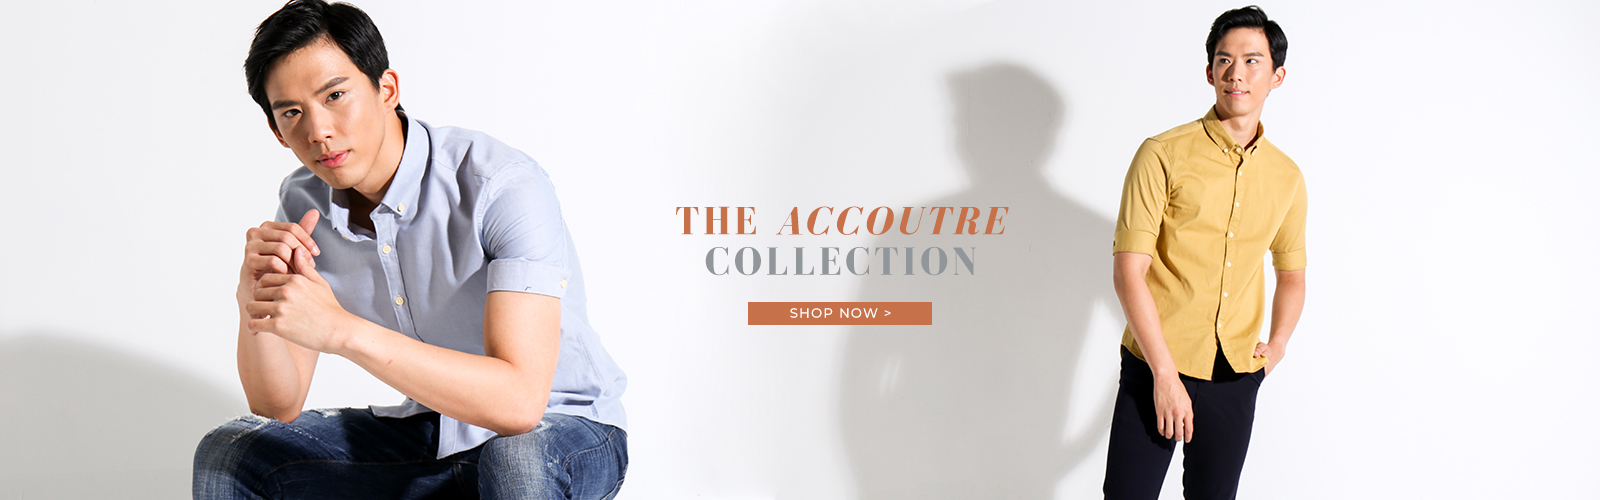 The Accoutre Collection